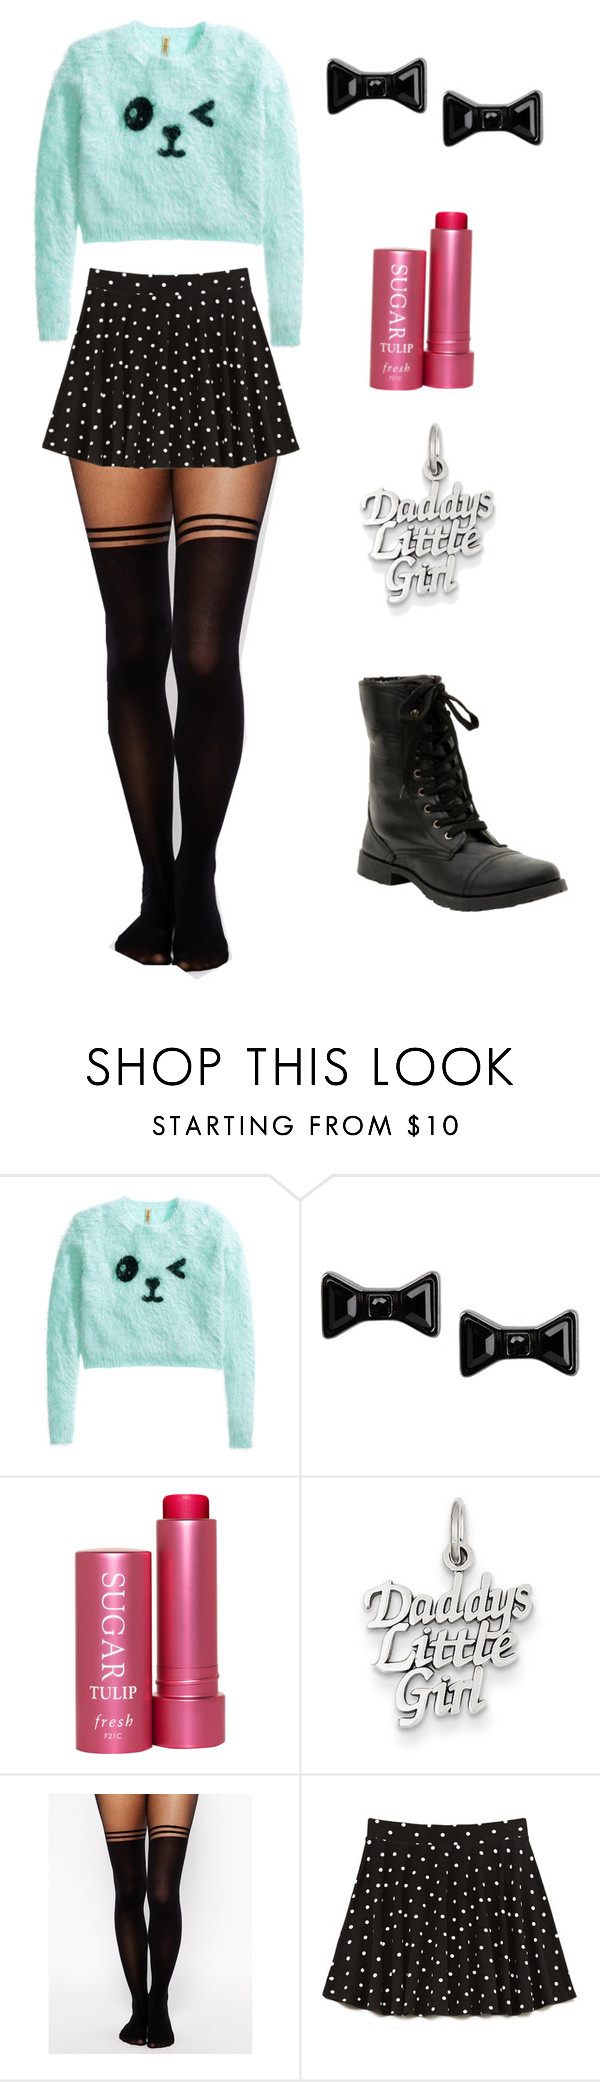 outfit 1  outfits  pinterest  outfits cute outfits